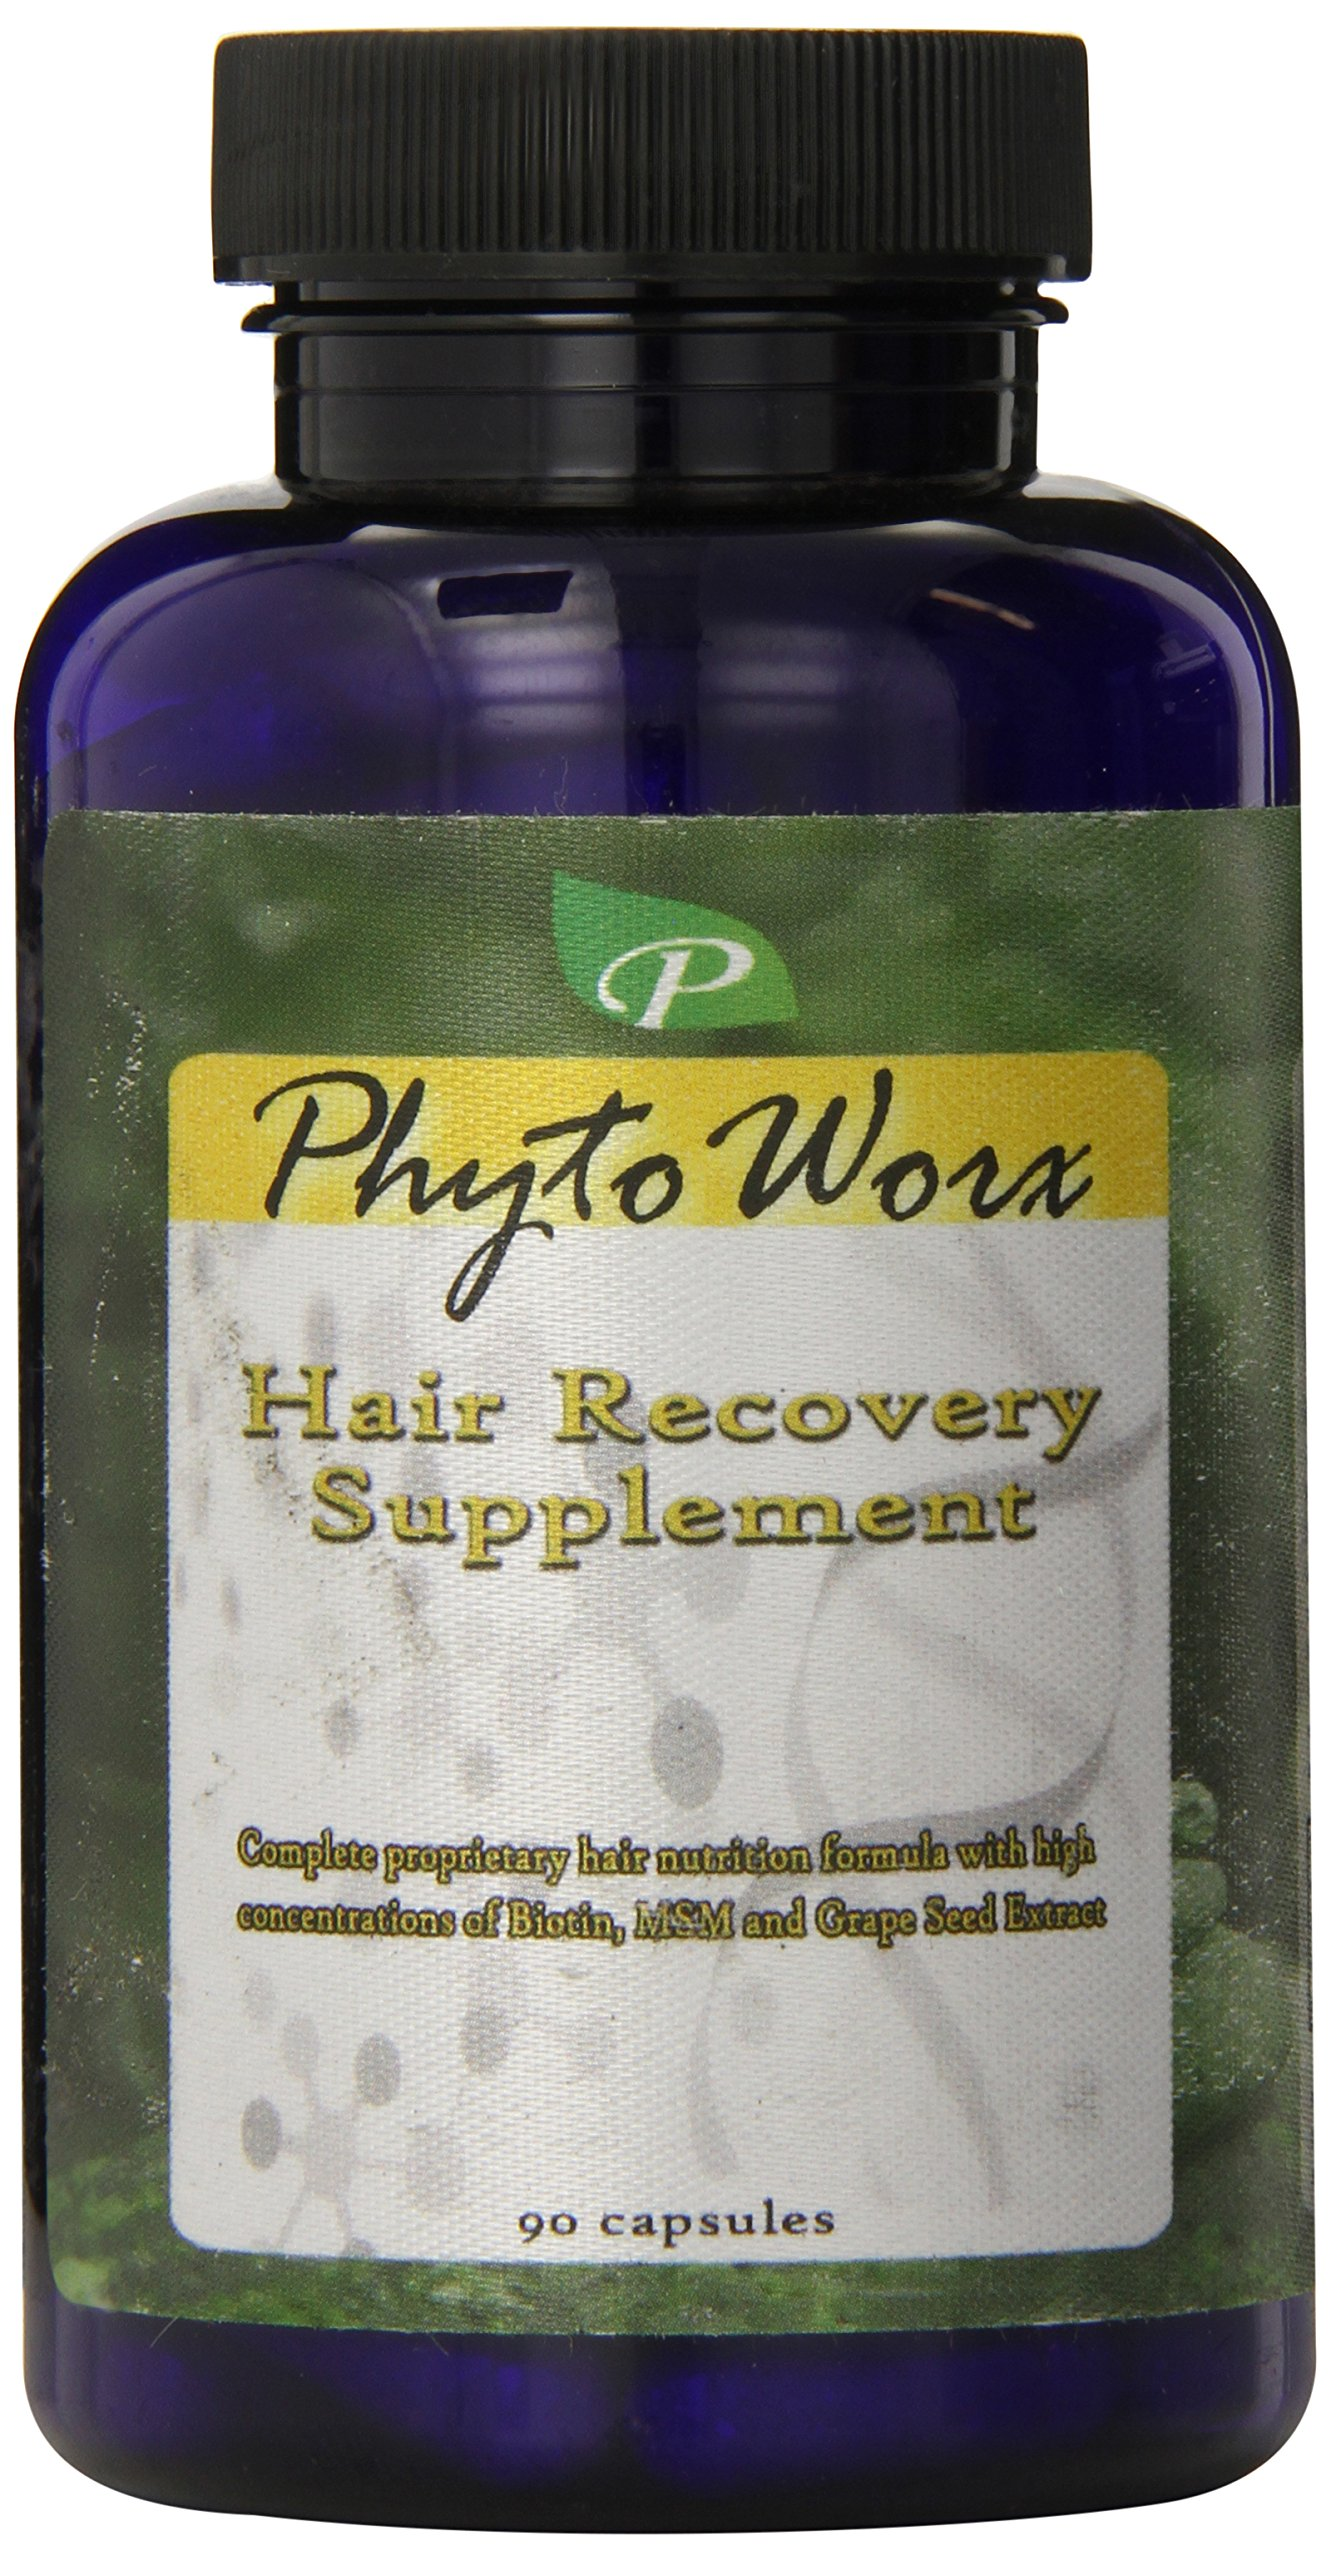 PhytoWorx Hair Recovery and Regrowth Supplement | Against All types of Hair Loss | Contains Grape Seed Extract and MSM for Rapid Growth